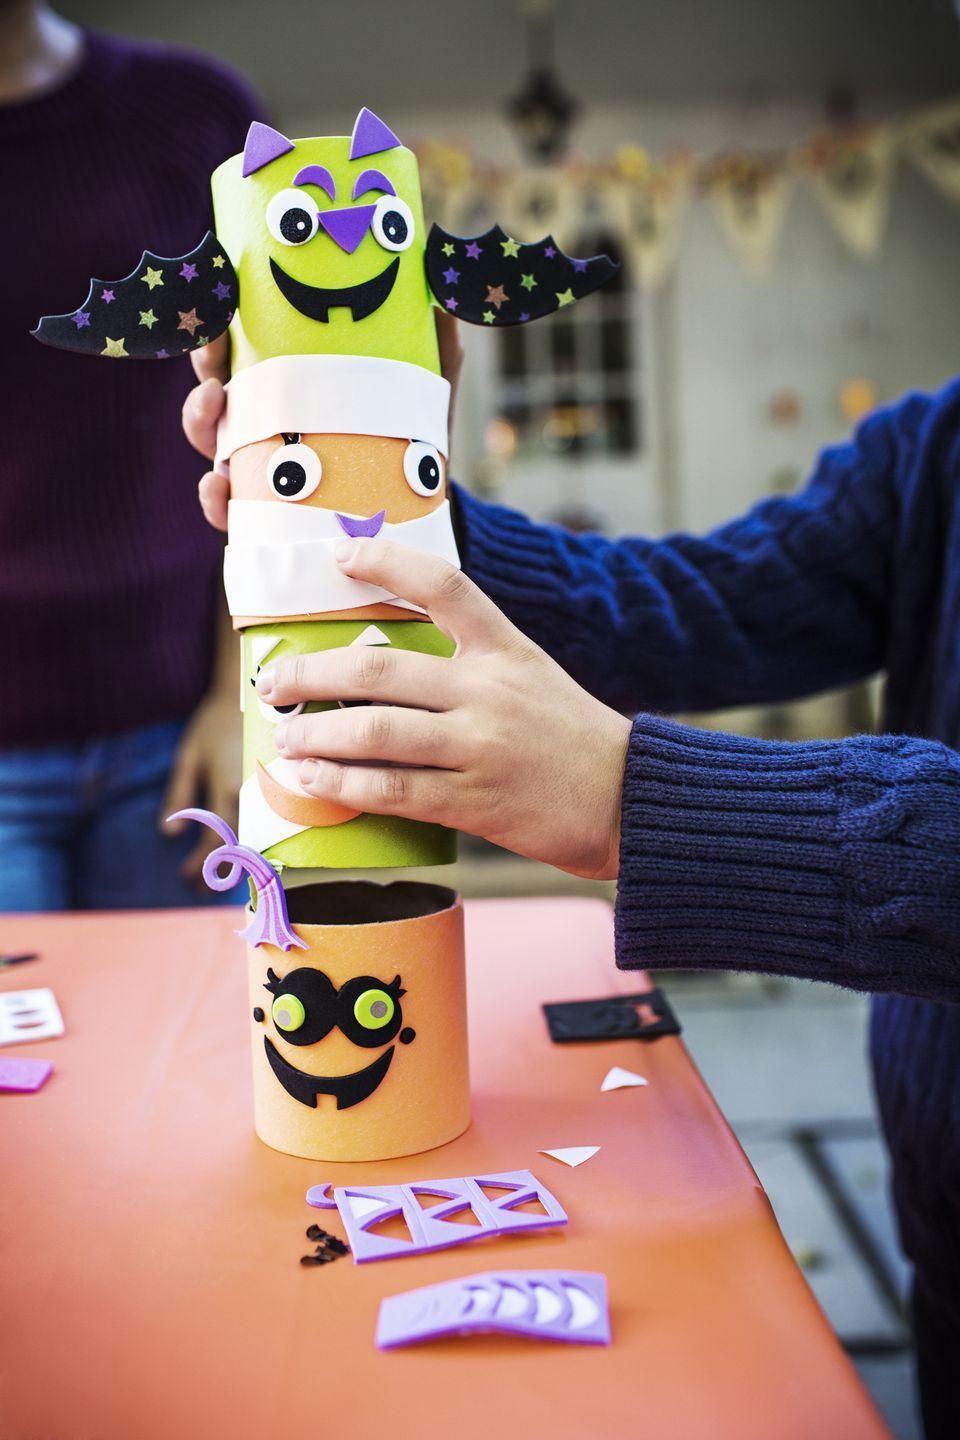 """<p>To keep kids entertained, pick up some supplies to make themed crafts. You can make Halloween specific ones, or get prepared for Thanksgiving with some <a href=""""https://www.delish.com/food-news/g33809443/thanksgiving-crafts-kids/"""" rel=""""nofollow noopener"""" target=""""_blank"""" data-ylk=""""slk:DIY activities"""" class=""""link rapid-noclick-resp"""">DIY activities</a>, too.</p><p><a class=""""link rapid-noclick-resp"""" href=""""https://www.delish.com/food-news/g33809443/thanksgiving-crafts-kids/"""" rel=""""nofollow noopener"""" target=""""_blank"""" data-ylk=""""slk:GET FALL CRAFT IDEAS"""">GET FALL CRAFT IDEAS</a></p>"""